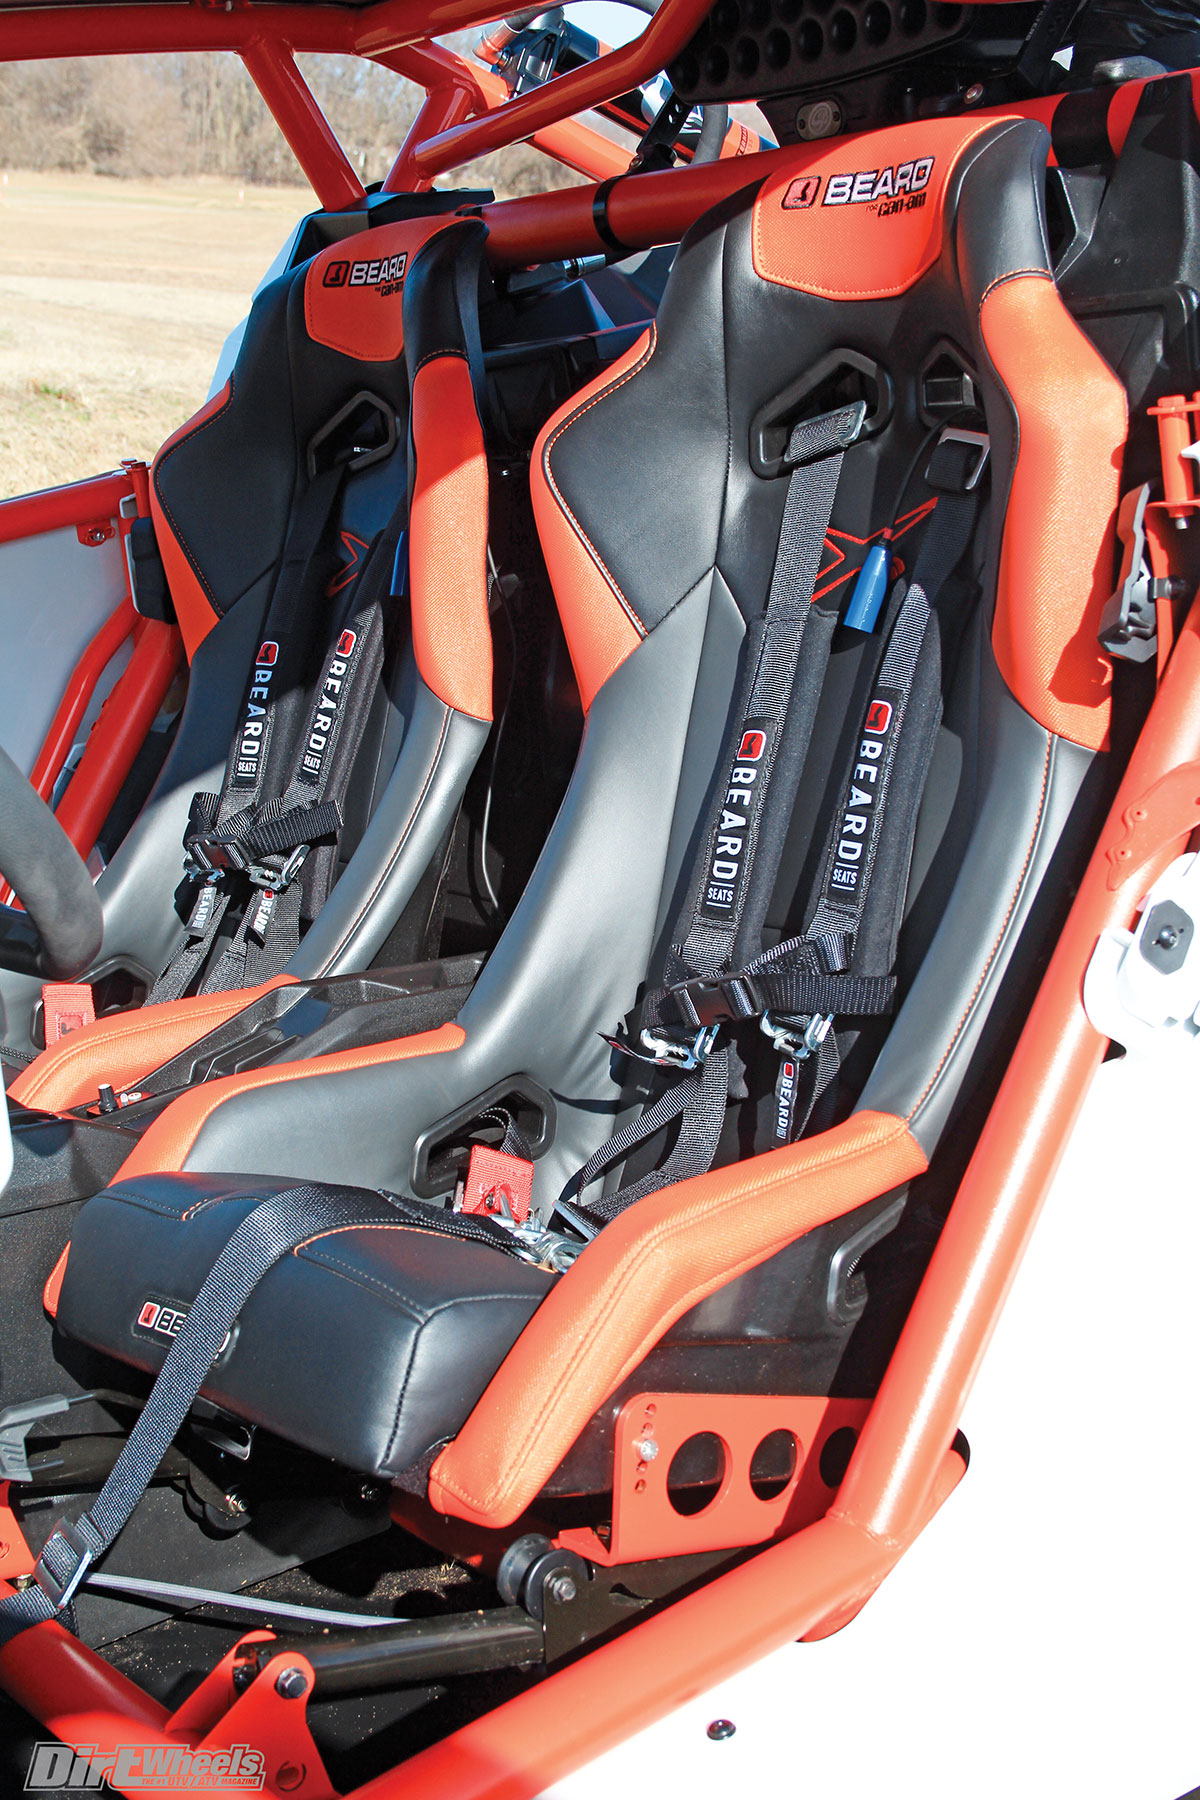 Beard Seats teamed up with Can-Am to create seats for the X3 that are more comfortable and hold you in place better. Five-point racing harnesses were installed on the Can-Am.